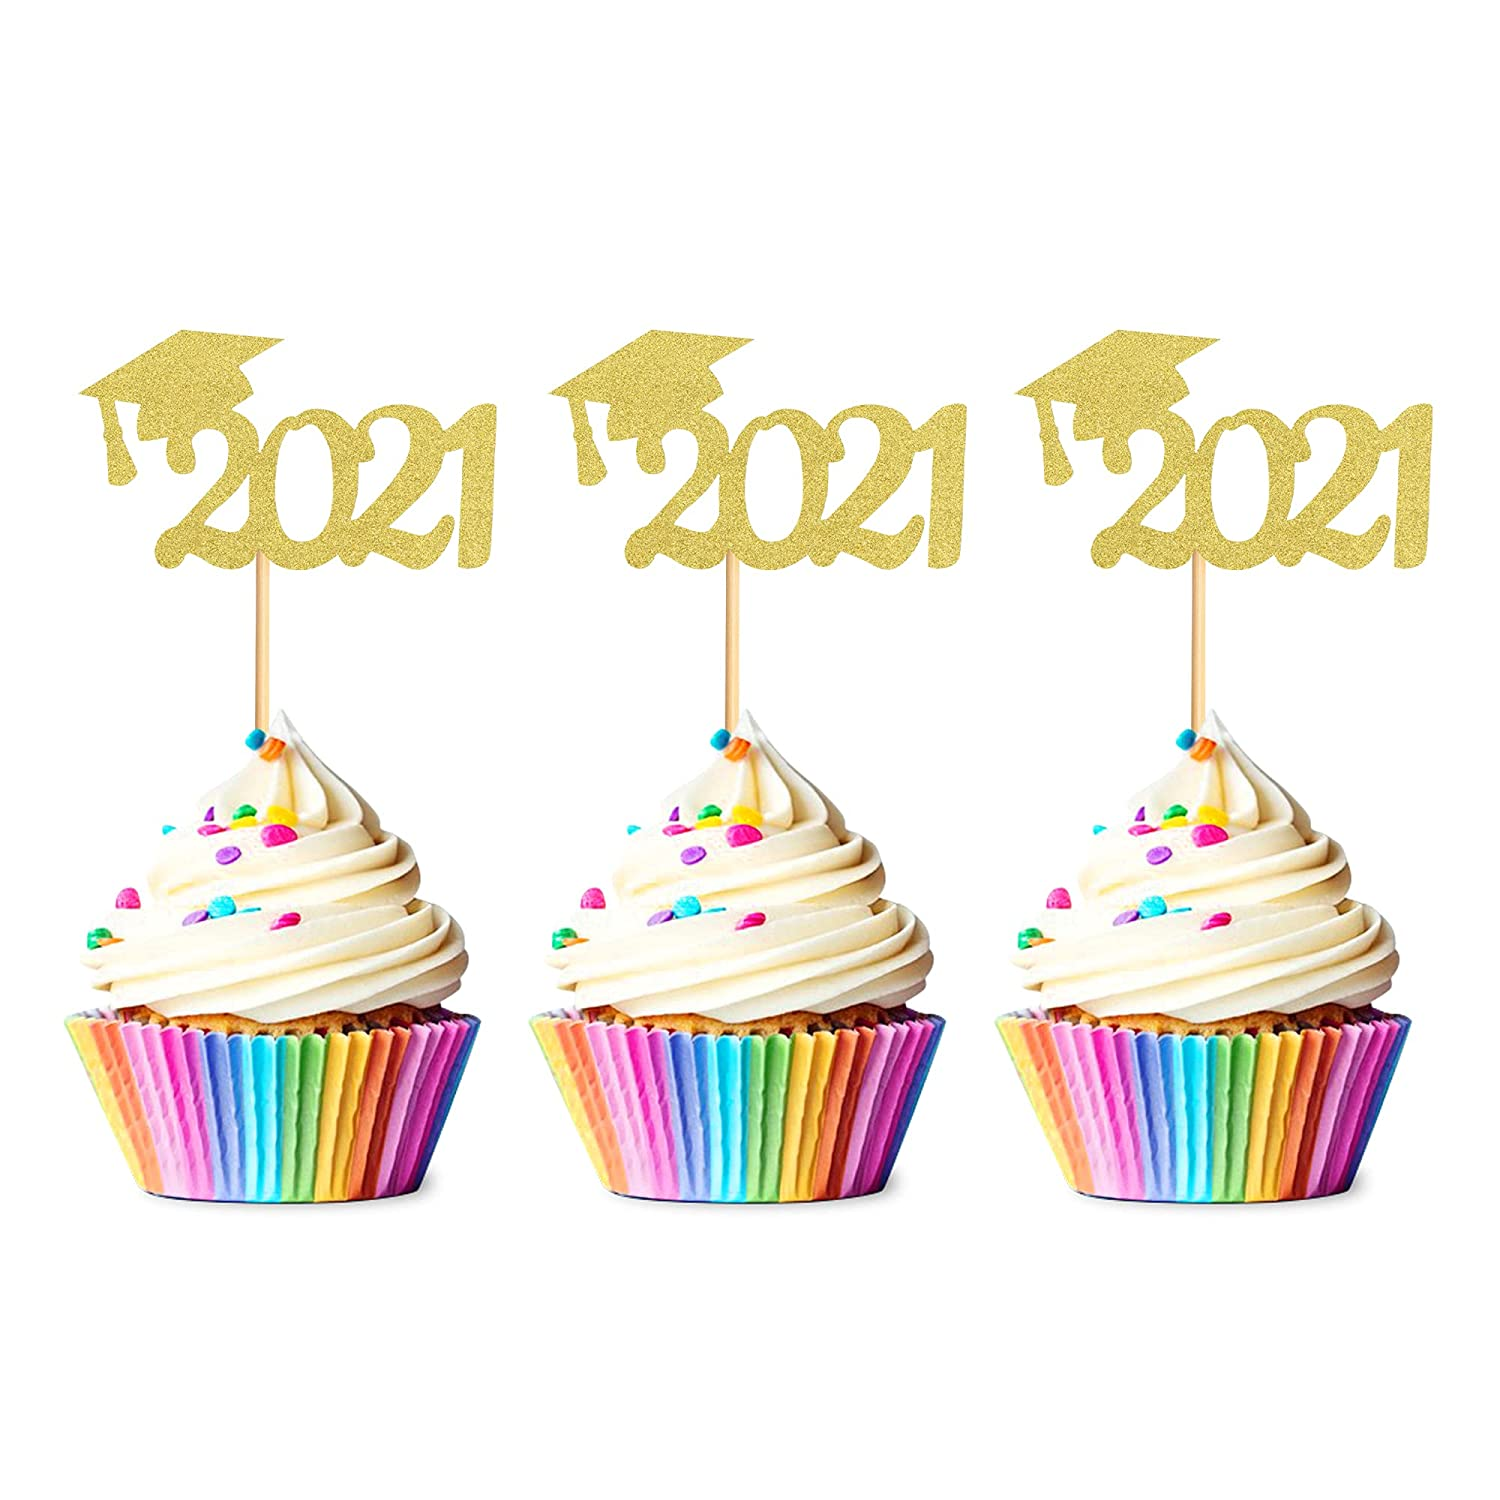 Unimall Pack of 48 2021 Grad Cap Graduation Cupcake Toppers, Gold Glitter Graduate Food/Appetizer Picks For Graduation Party Mini Cake Decorations